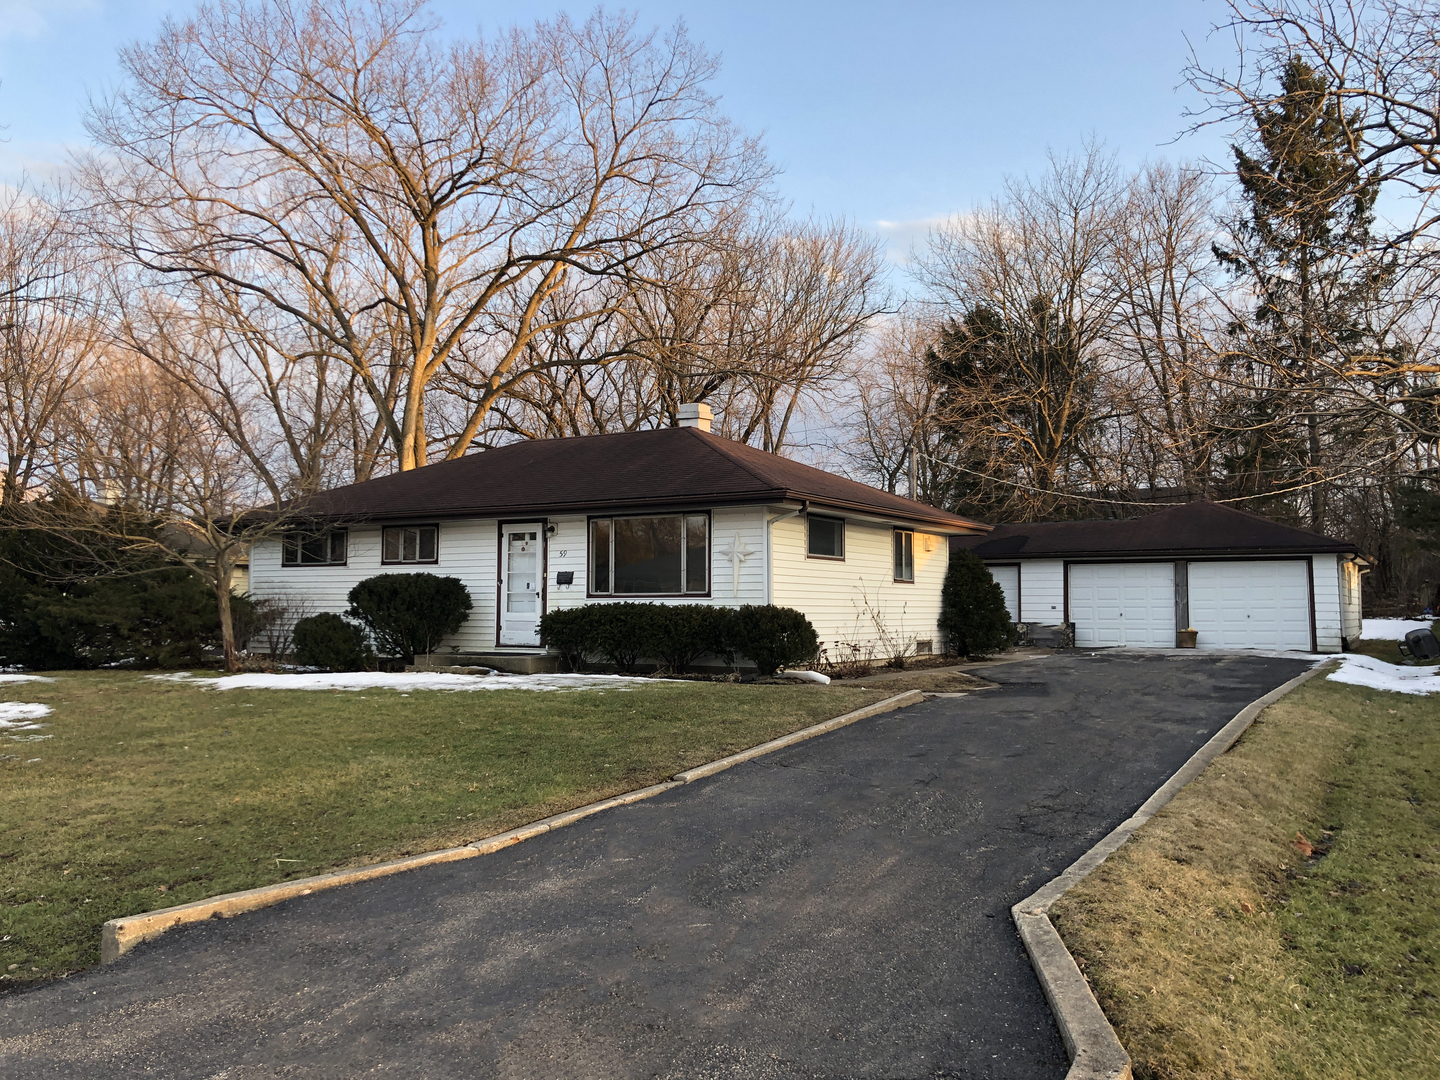 Photo of 59 Golfview Road, Lake Zurich, IL 60047 (MLS # 10678088)